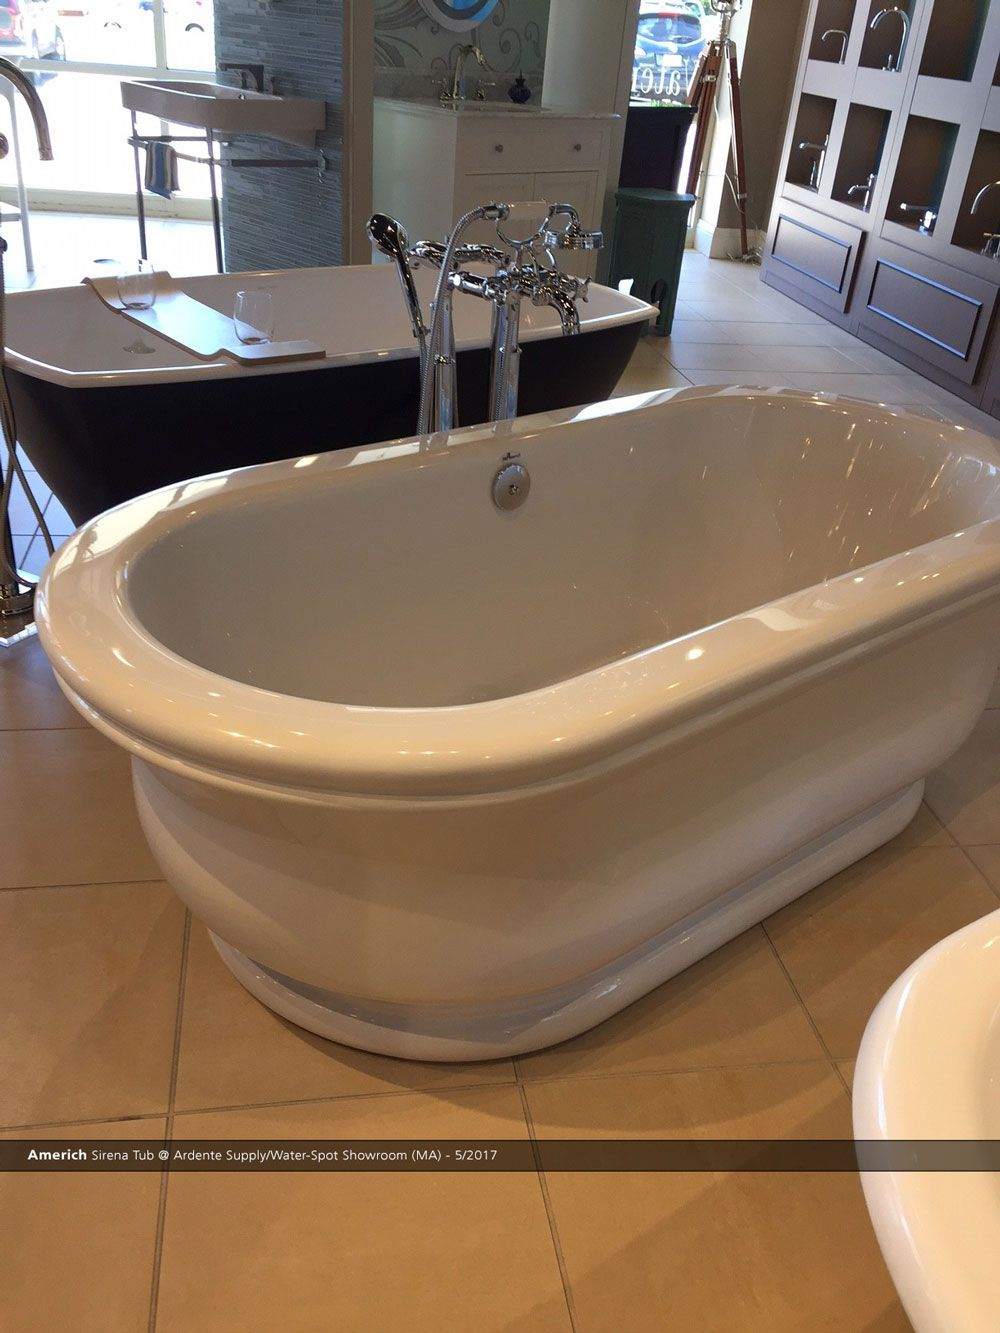 Waterspot Showrooms: The Finest In Kitchen U0026 Bath Fixtures, As Well As  Design U0026 Consultation Services For Rhode Island, Massachusetts U0026 All New  England.